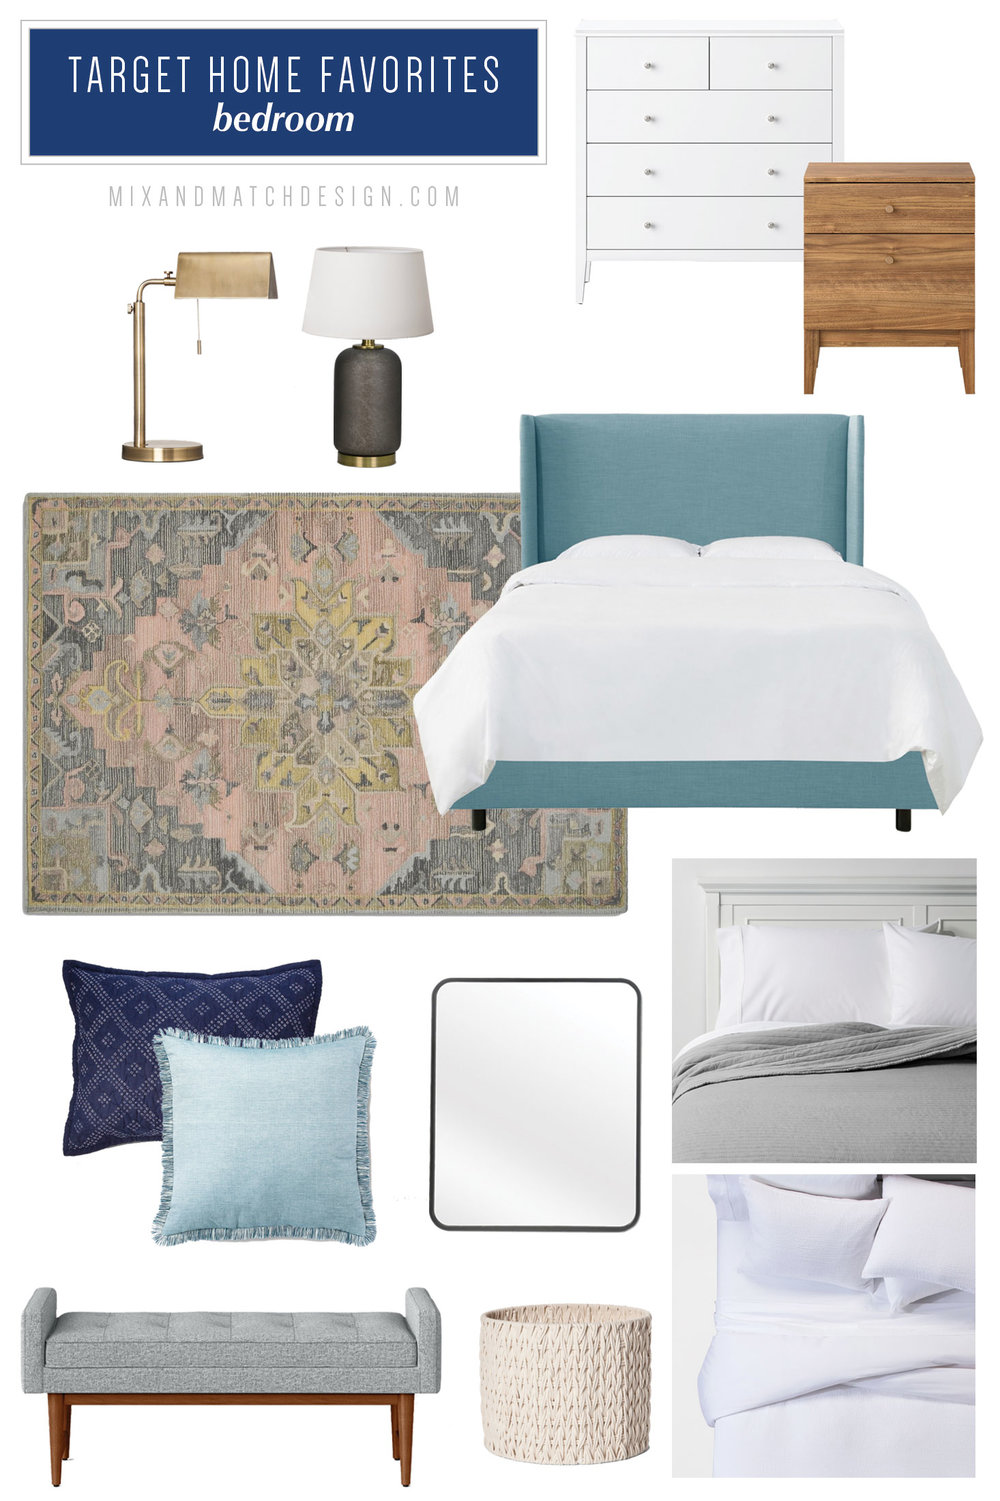 A Roundup Of The Furniture And Decor That Caught My Eye Recently At Target.  If